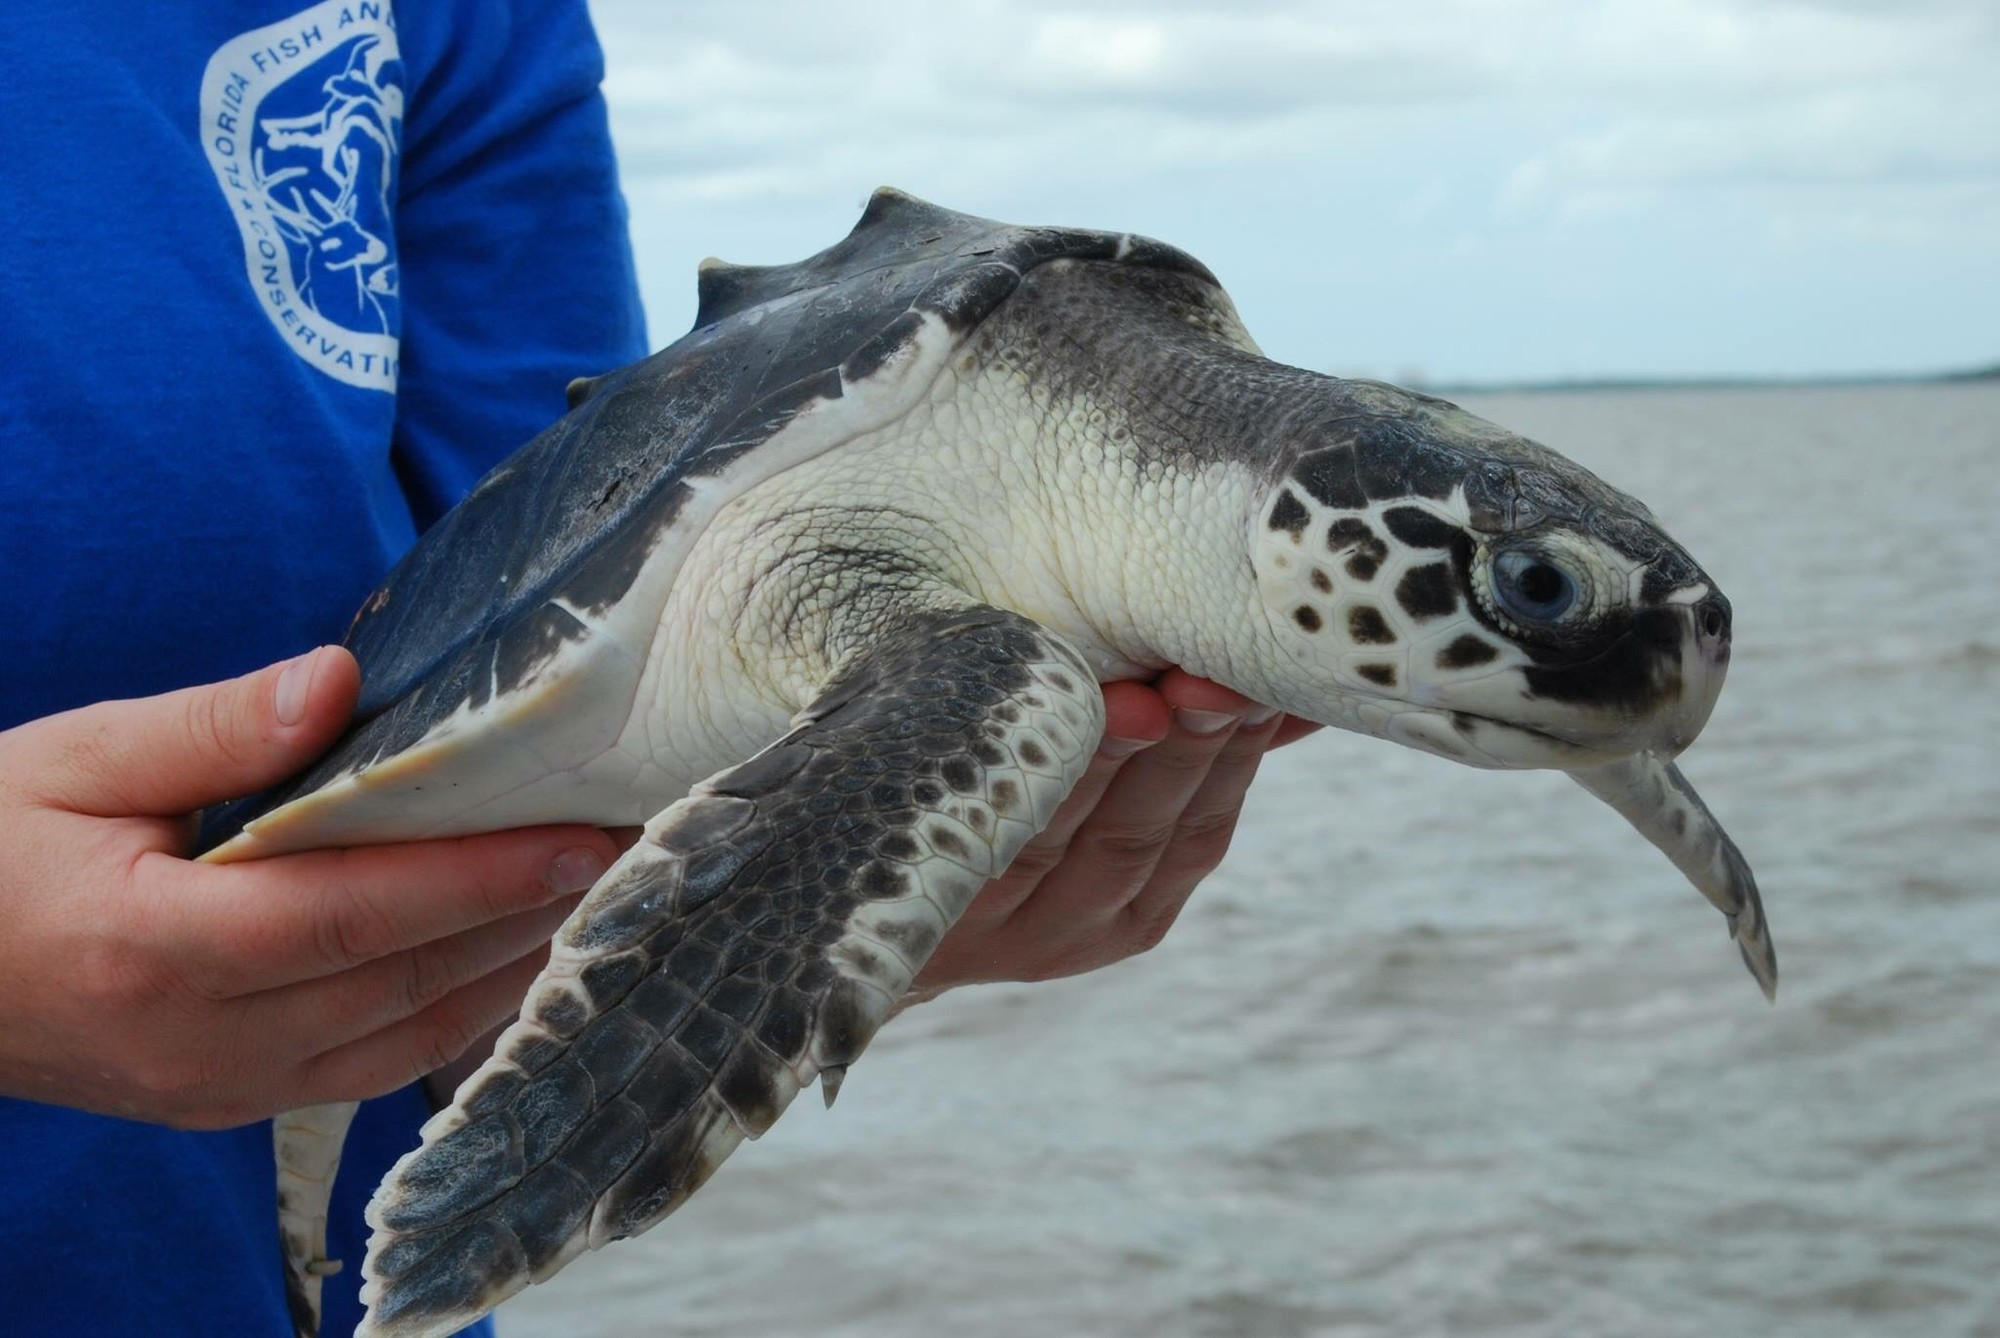 A sea turtle being carried to the ocean to be released